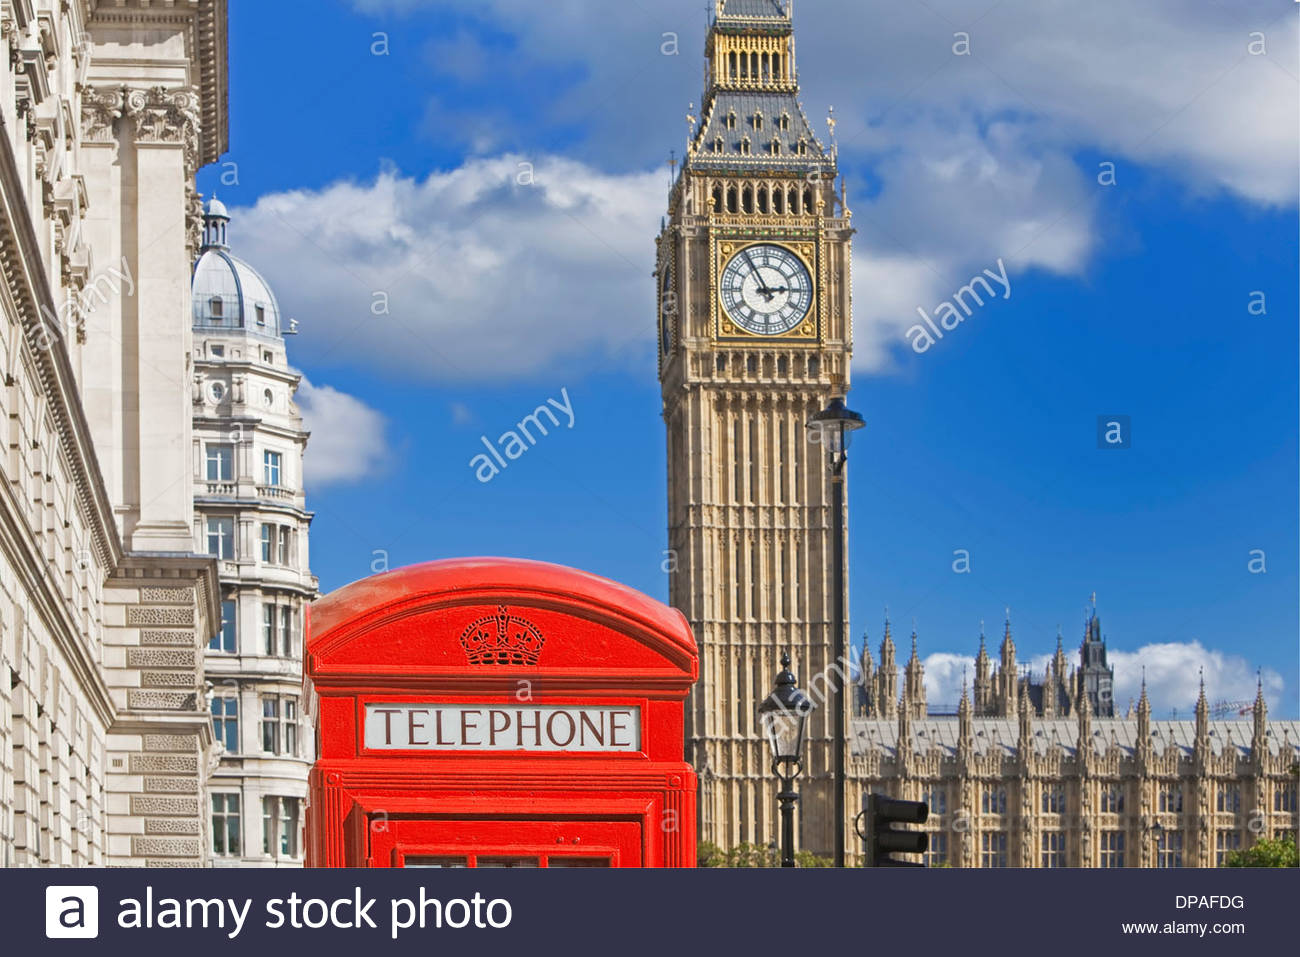 Big Ben and red telephone box, London, UK - Stock Image